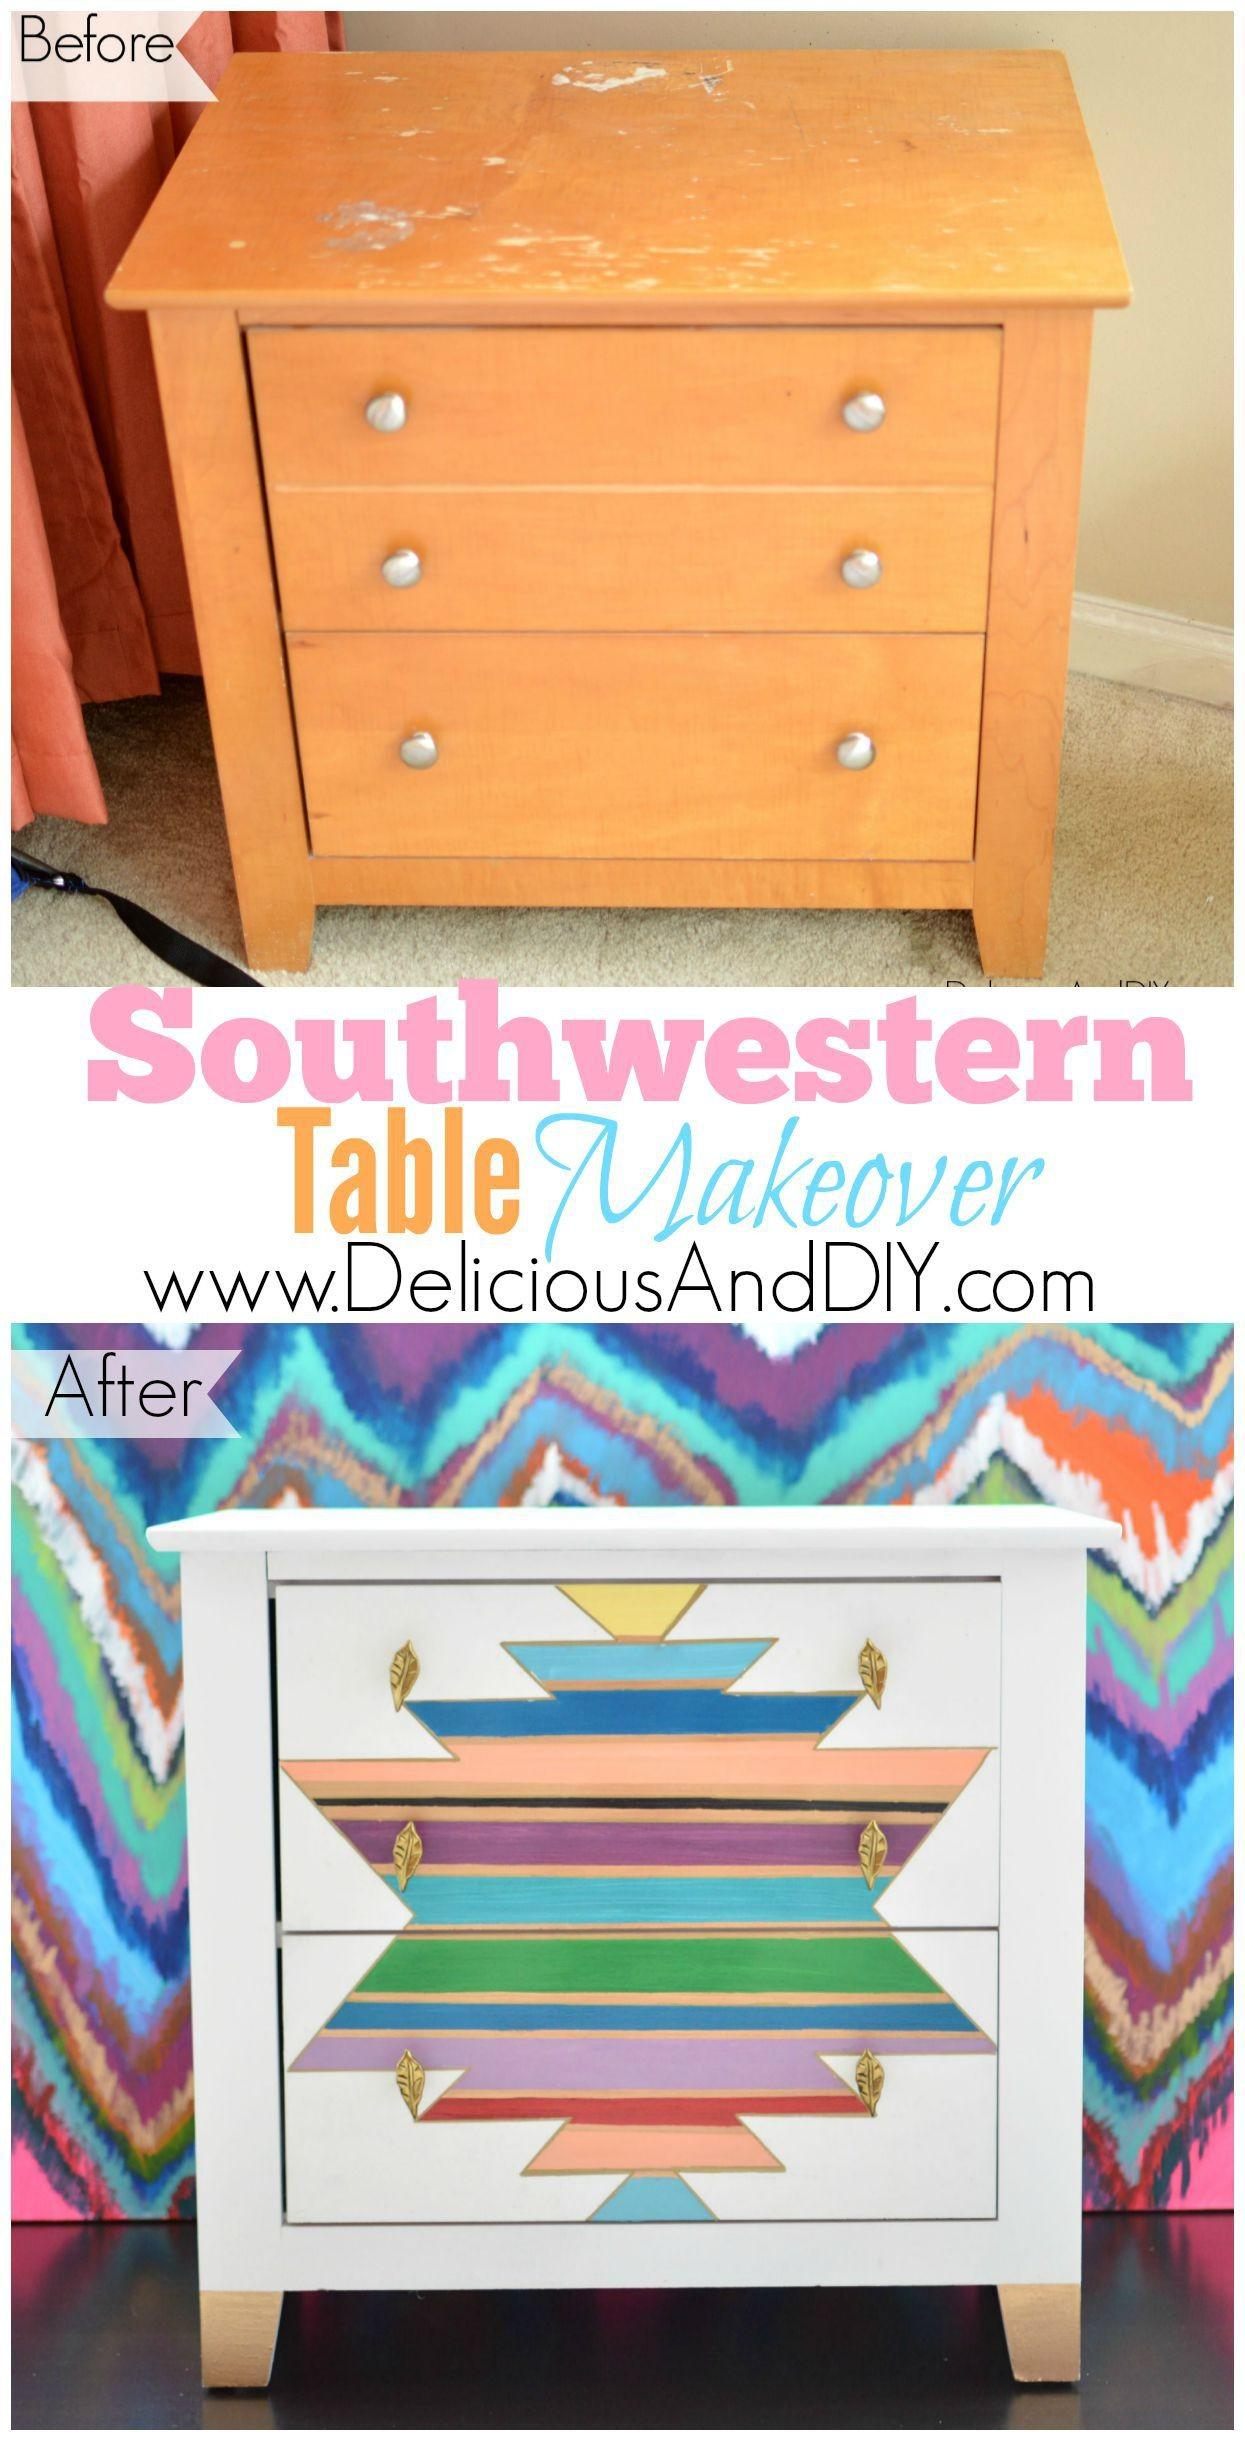 Southwestern Table Makeover Delicious